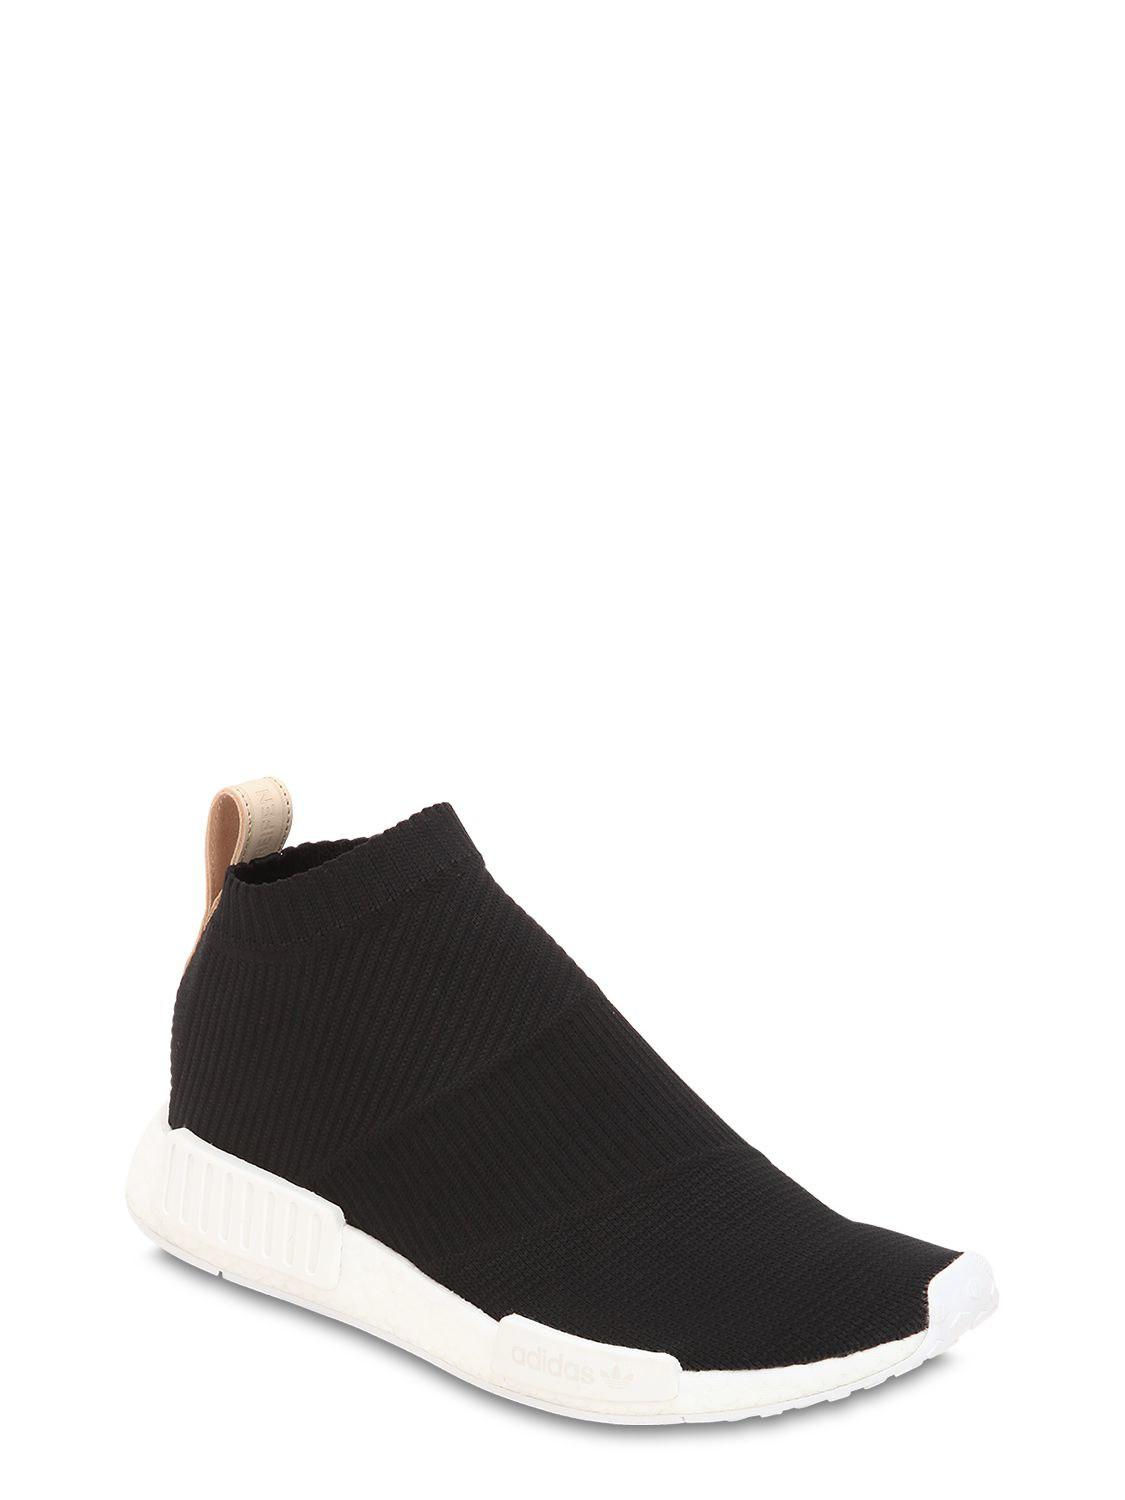 25212a8fb Lyst - adidas Originals Nmd Cs1 Primeknit Sneakers in Black for Men - Save  45%